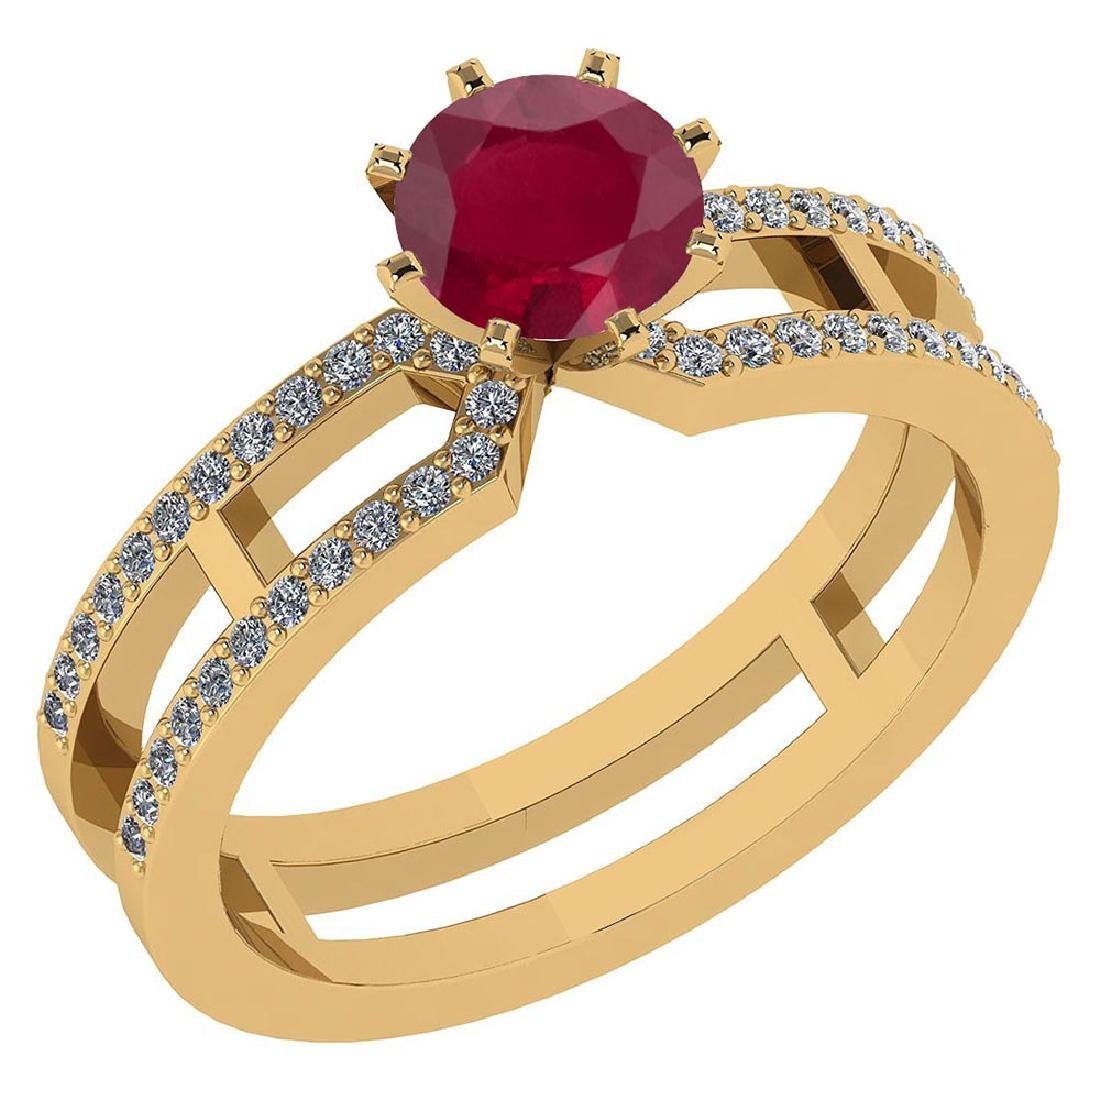 Certified 1.32 Ctw Genuine Ruby And Diamond 14k Yellow